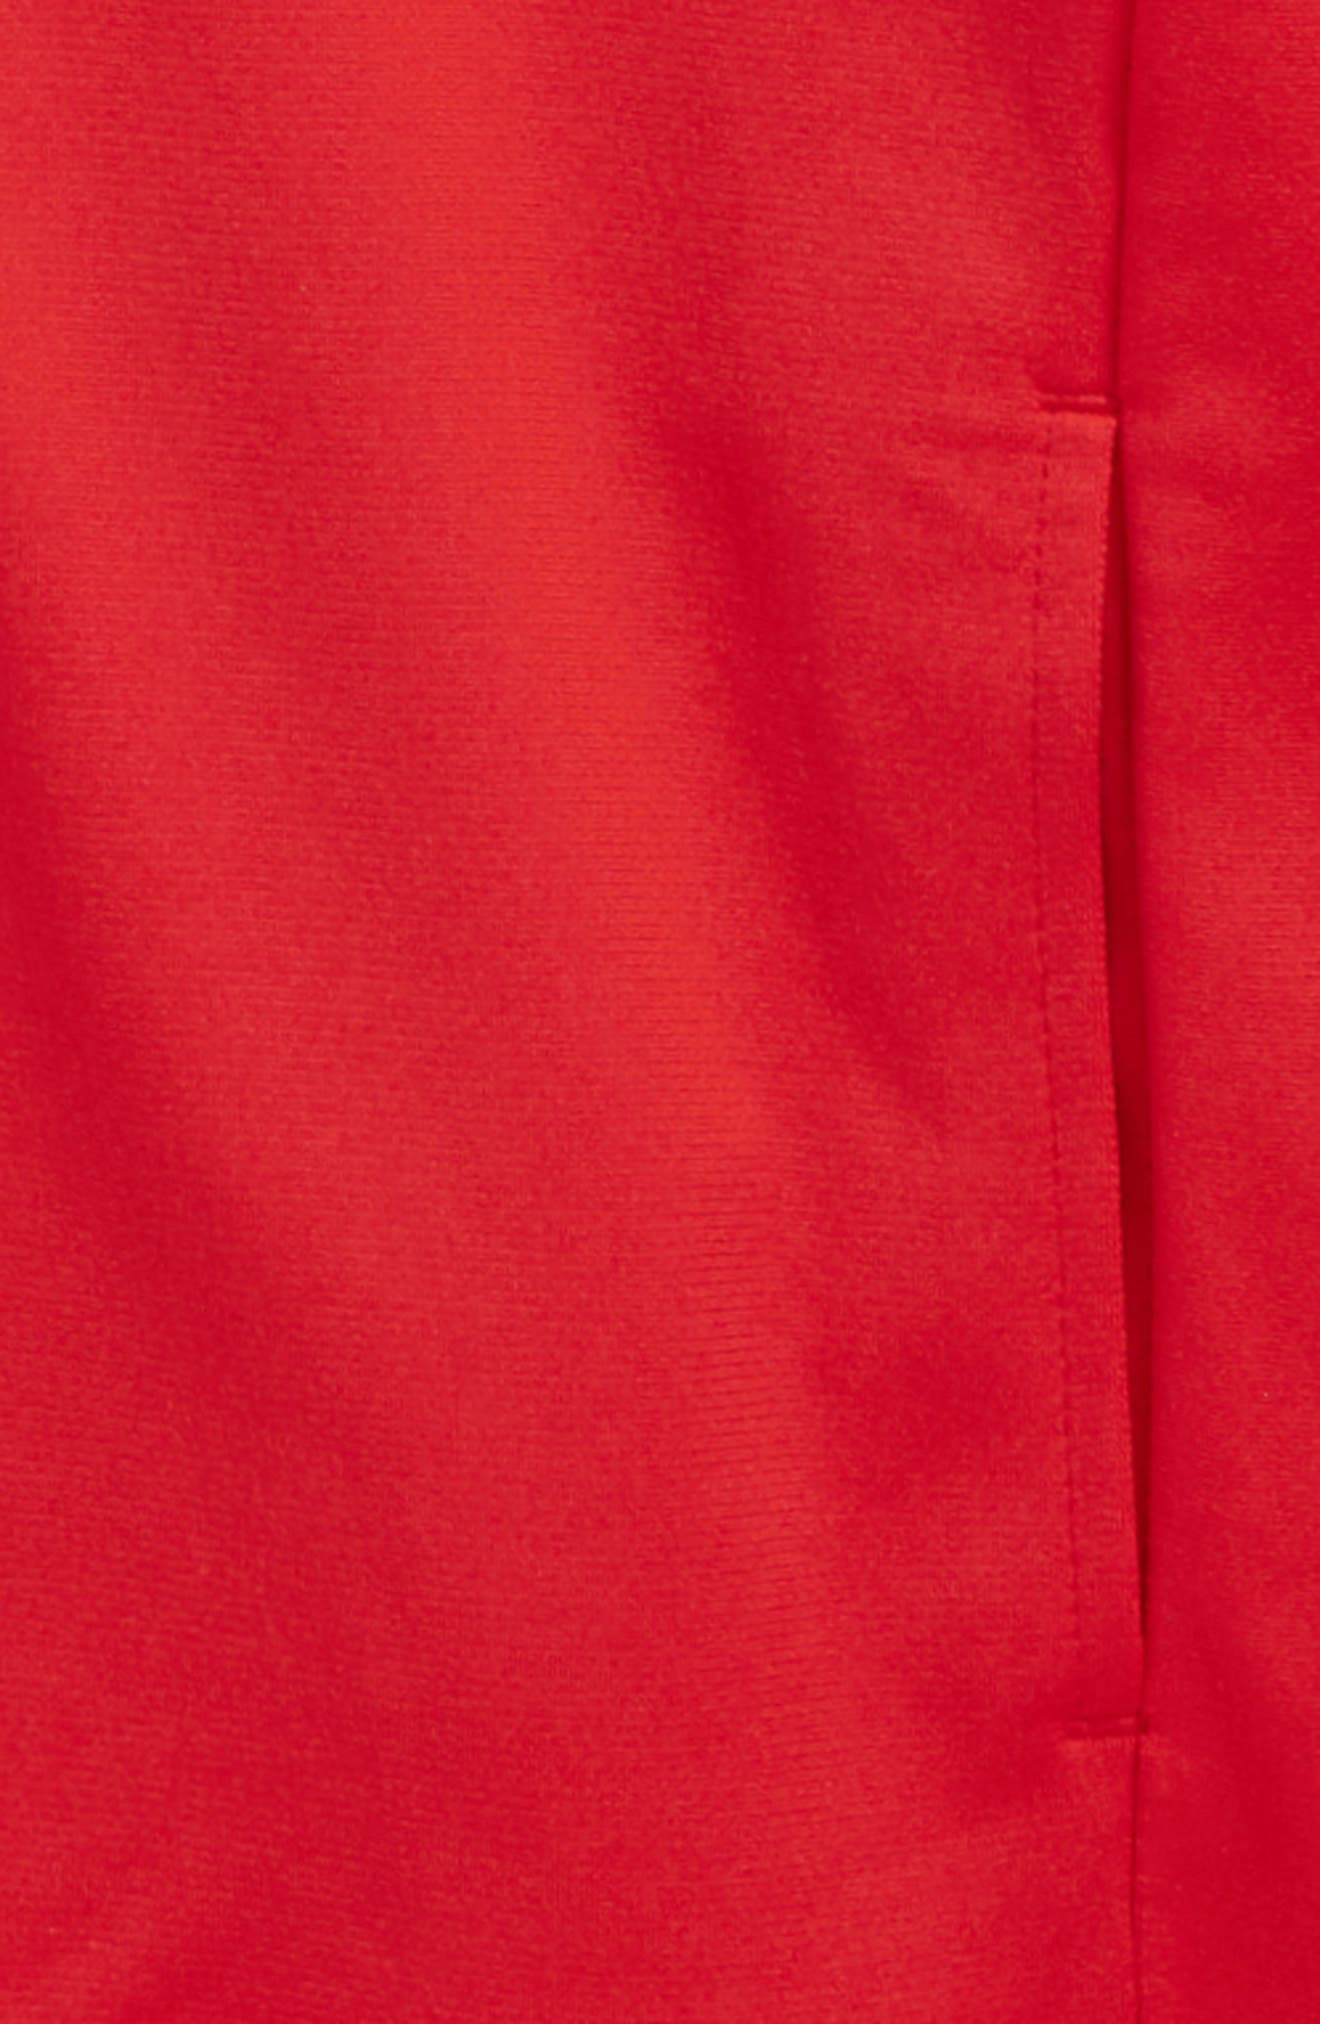 'Pennant' Warm Up Jacket,                             Alternate thumbnail 2, color,                             Red/ Black